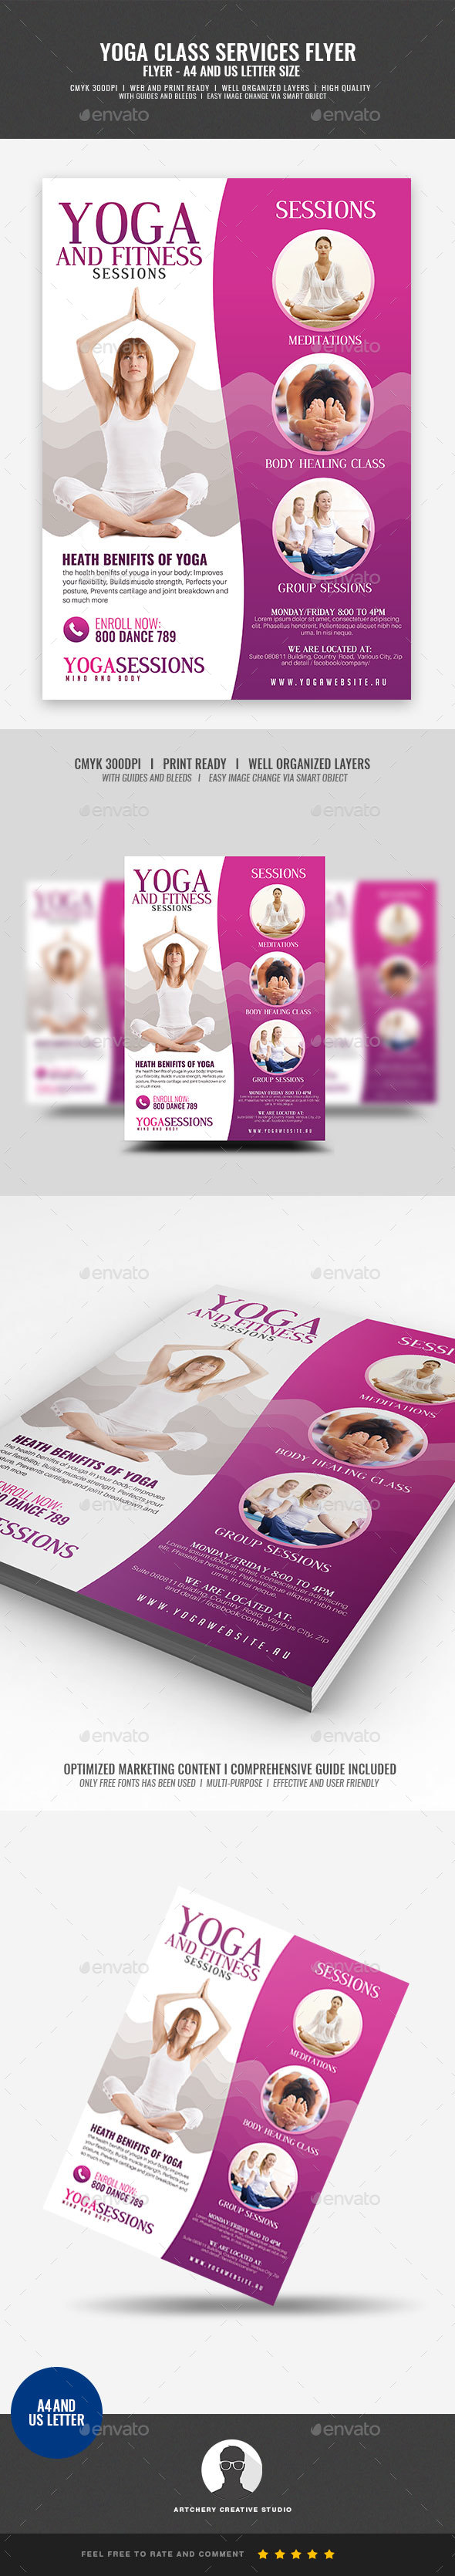 Yoga Class And Session Flyer - Corporate Flyers